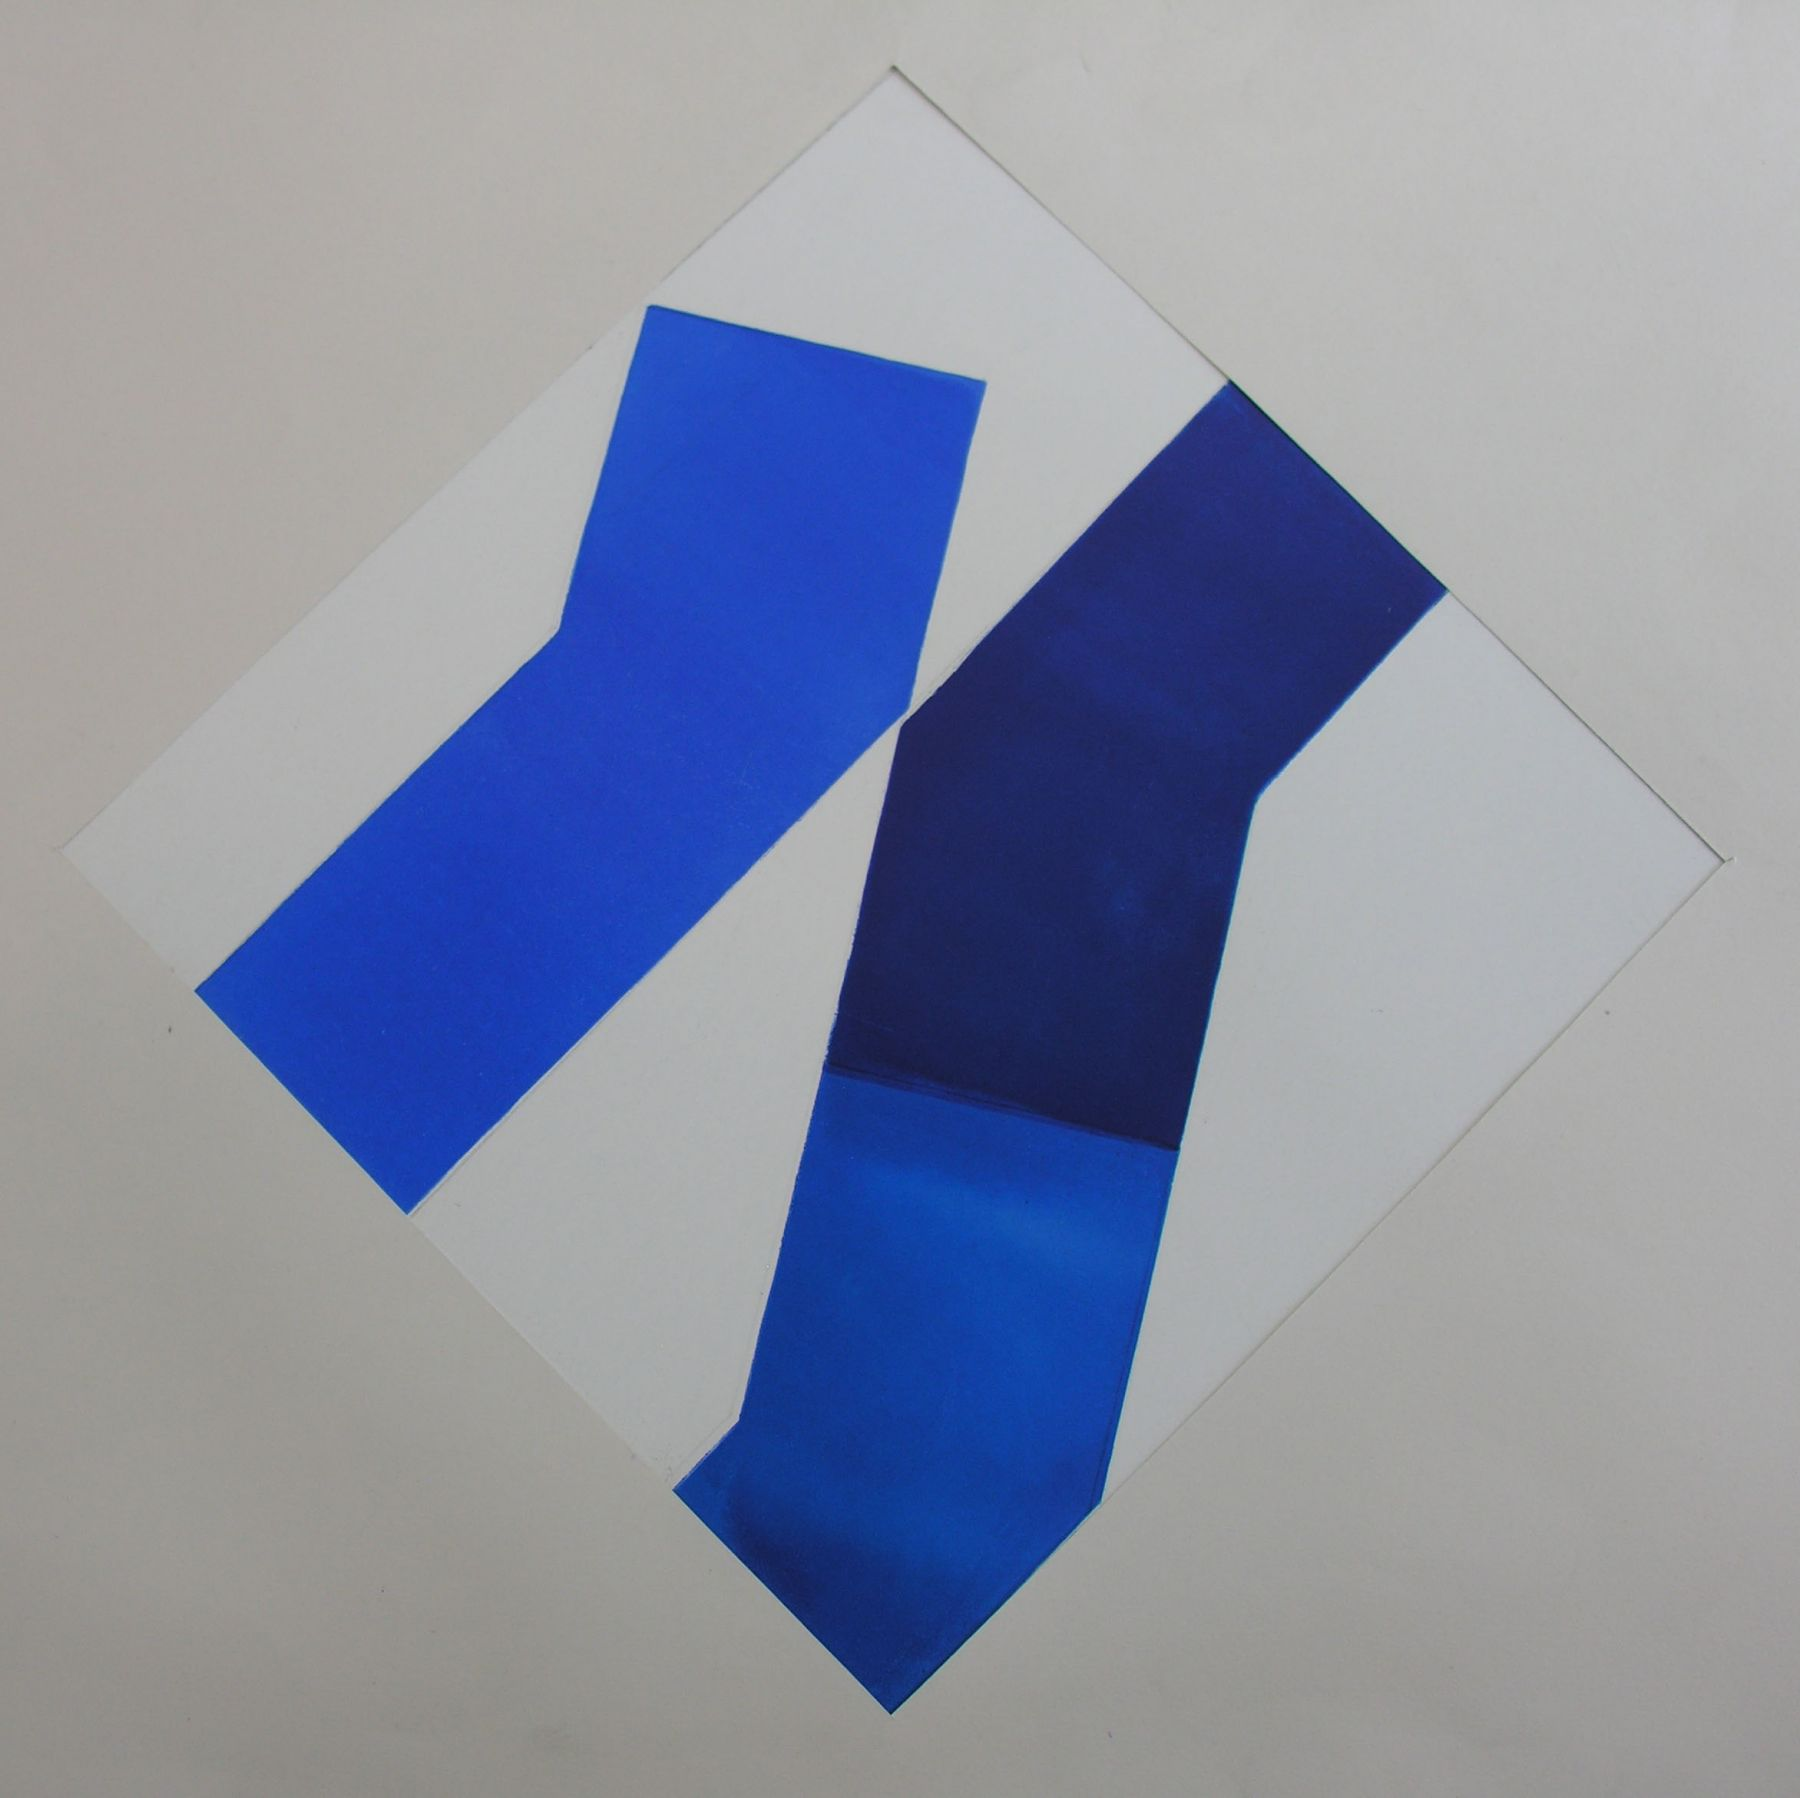 Manuel Espinosa,Untitled, 1974,Lithographic ink on paper,14 5/8 x 21 7/8 in. (37.3 x 55.5 cm.)